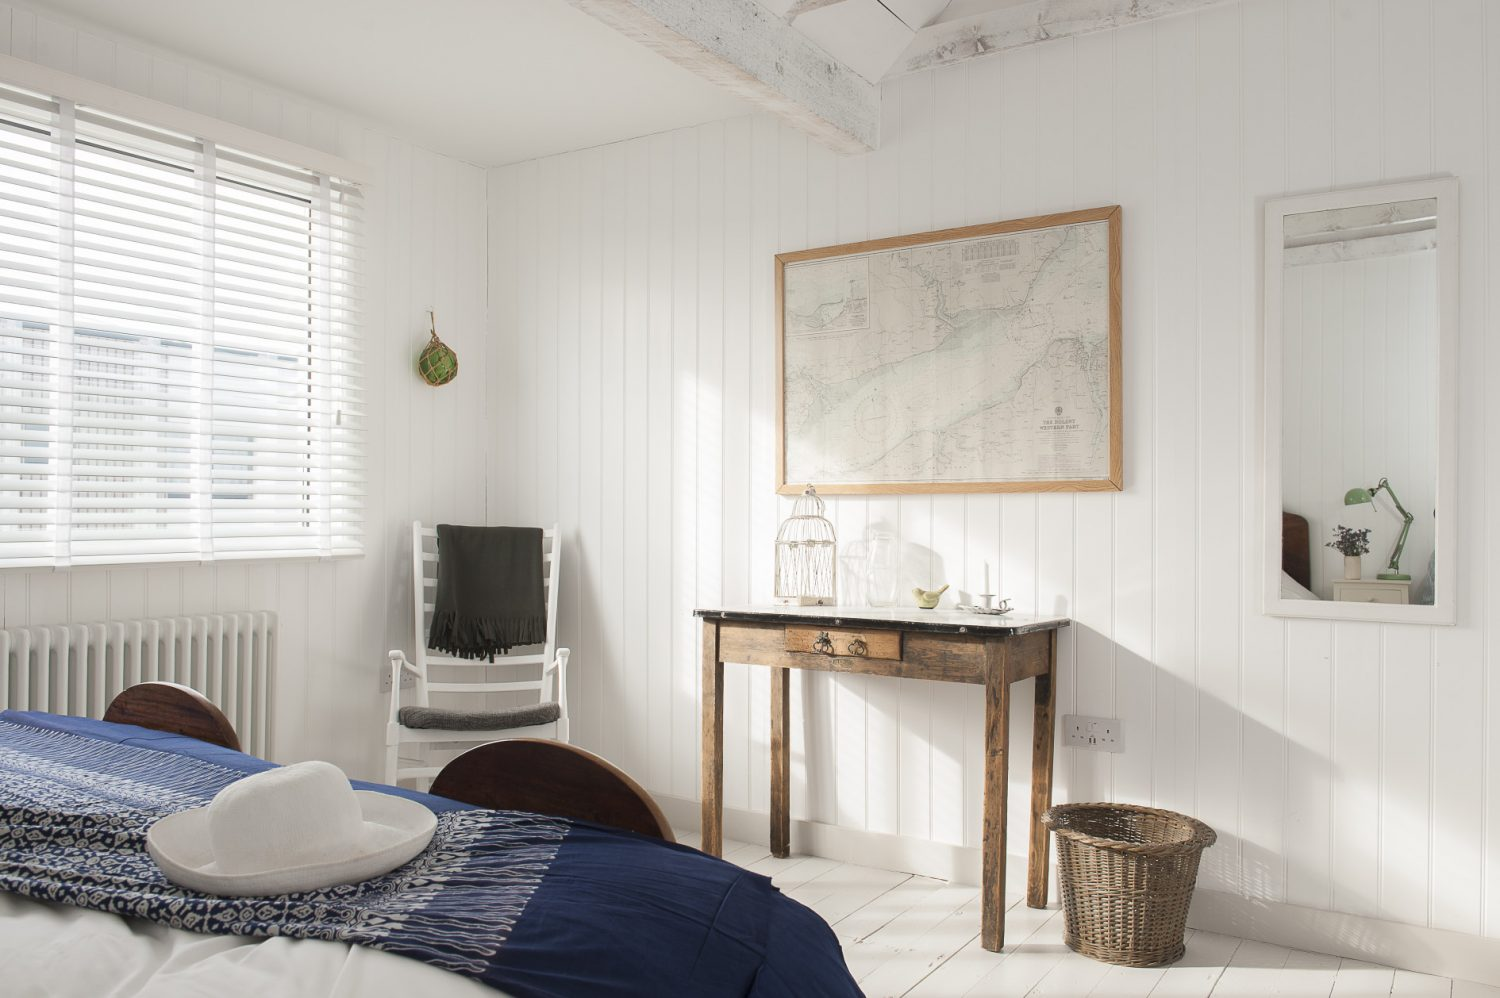 The bedrooms have been treated in a similar uncomplicated way and the understated scheme is a great backdrop to the quaint finds and harmonising colour accents